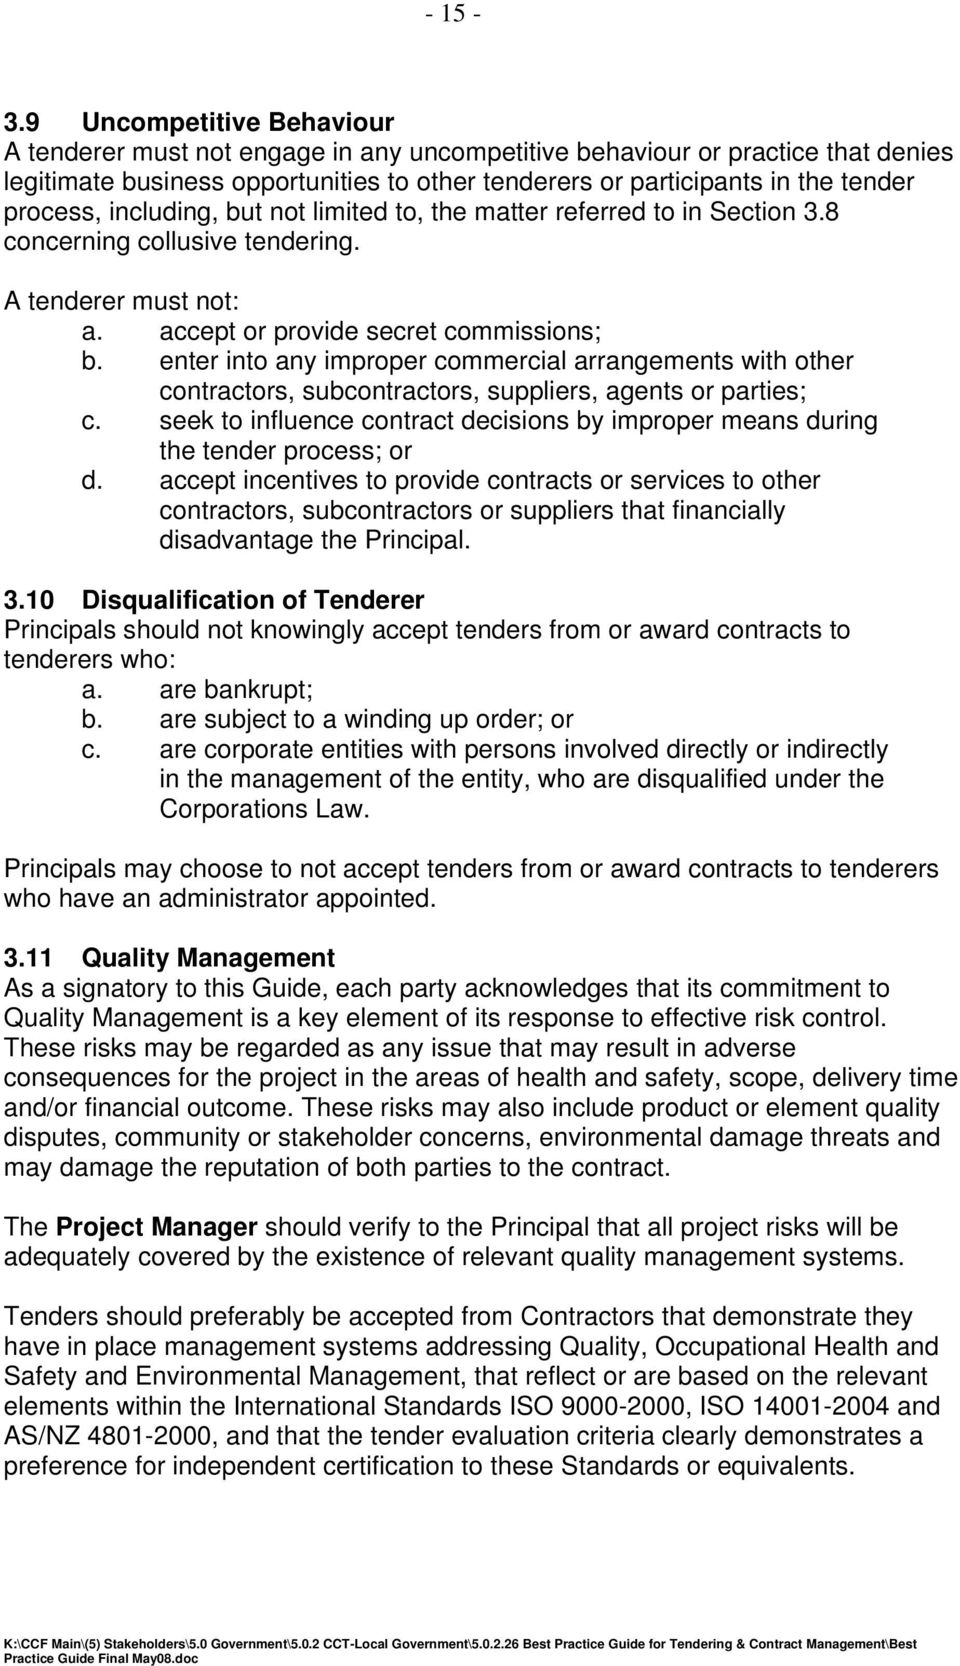 Victorian Civil Construction Industry Best Practice Guide For